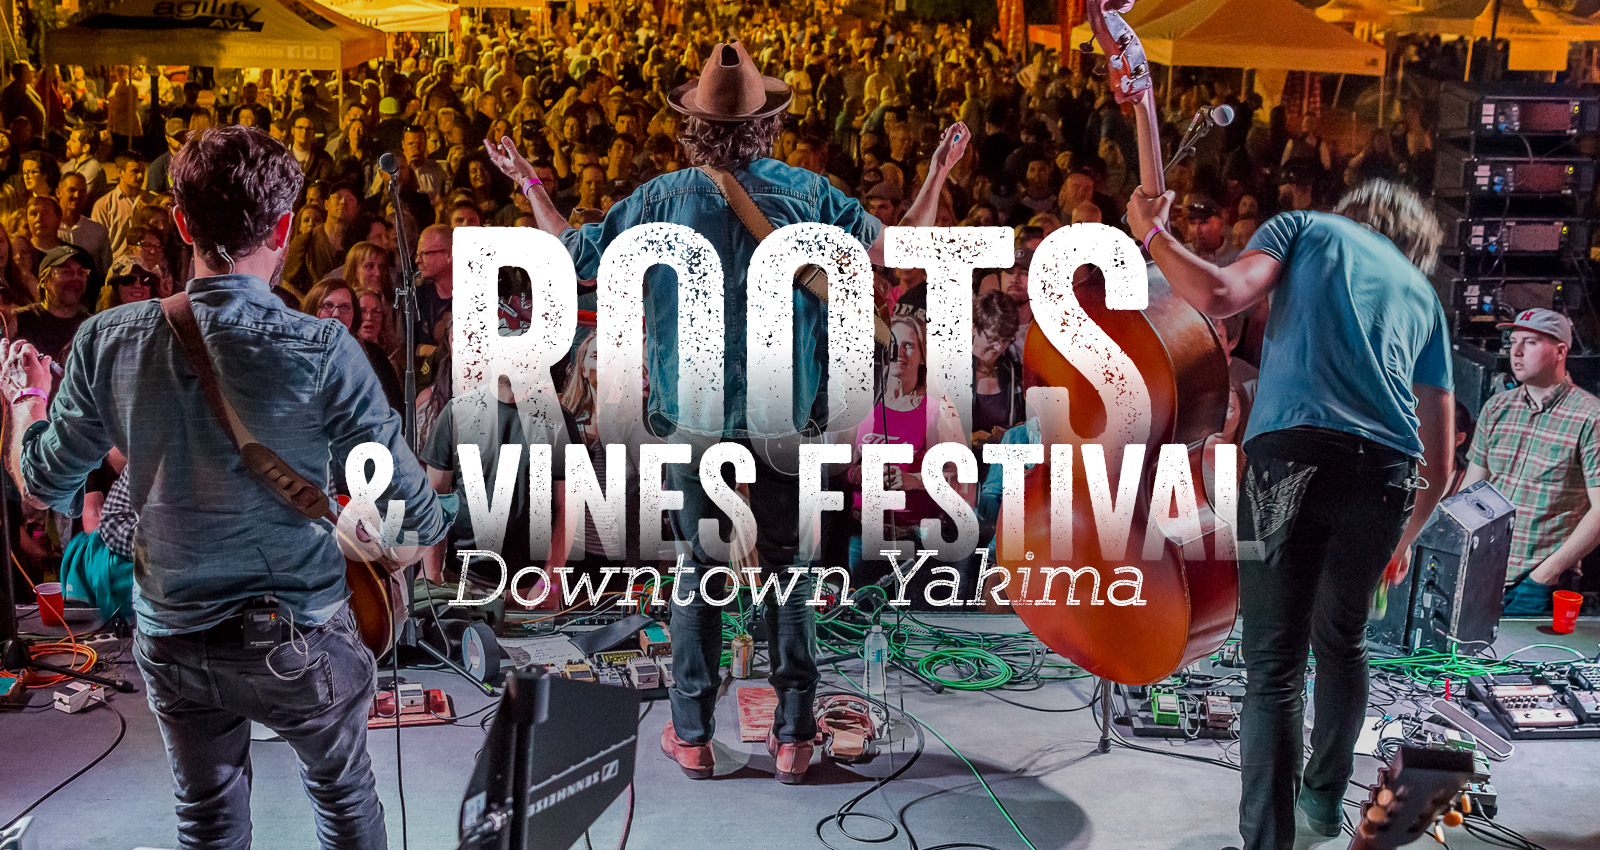 Roots and Vines Festival - Downtown Yakima